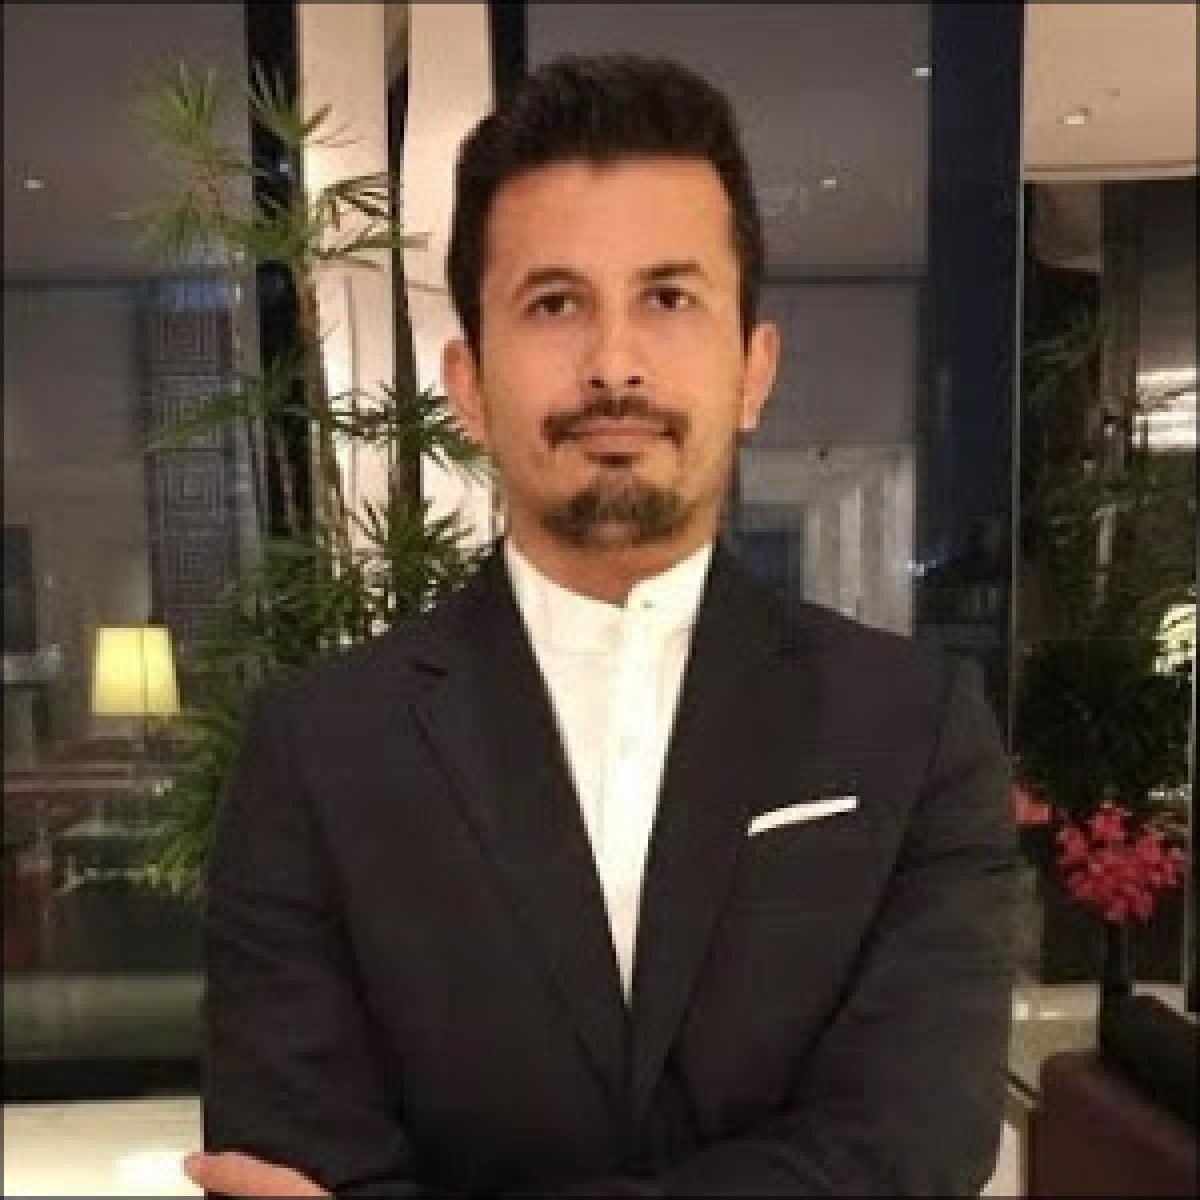 OYO Hotels & Homes elevates Gaurav Ajmera to COO, India & South Asia